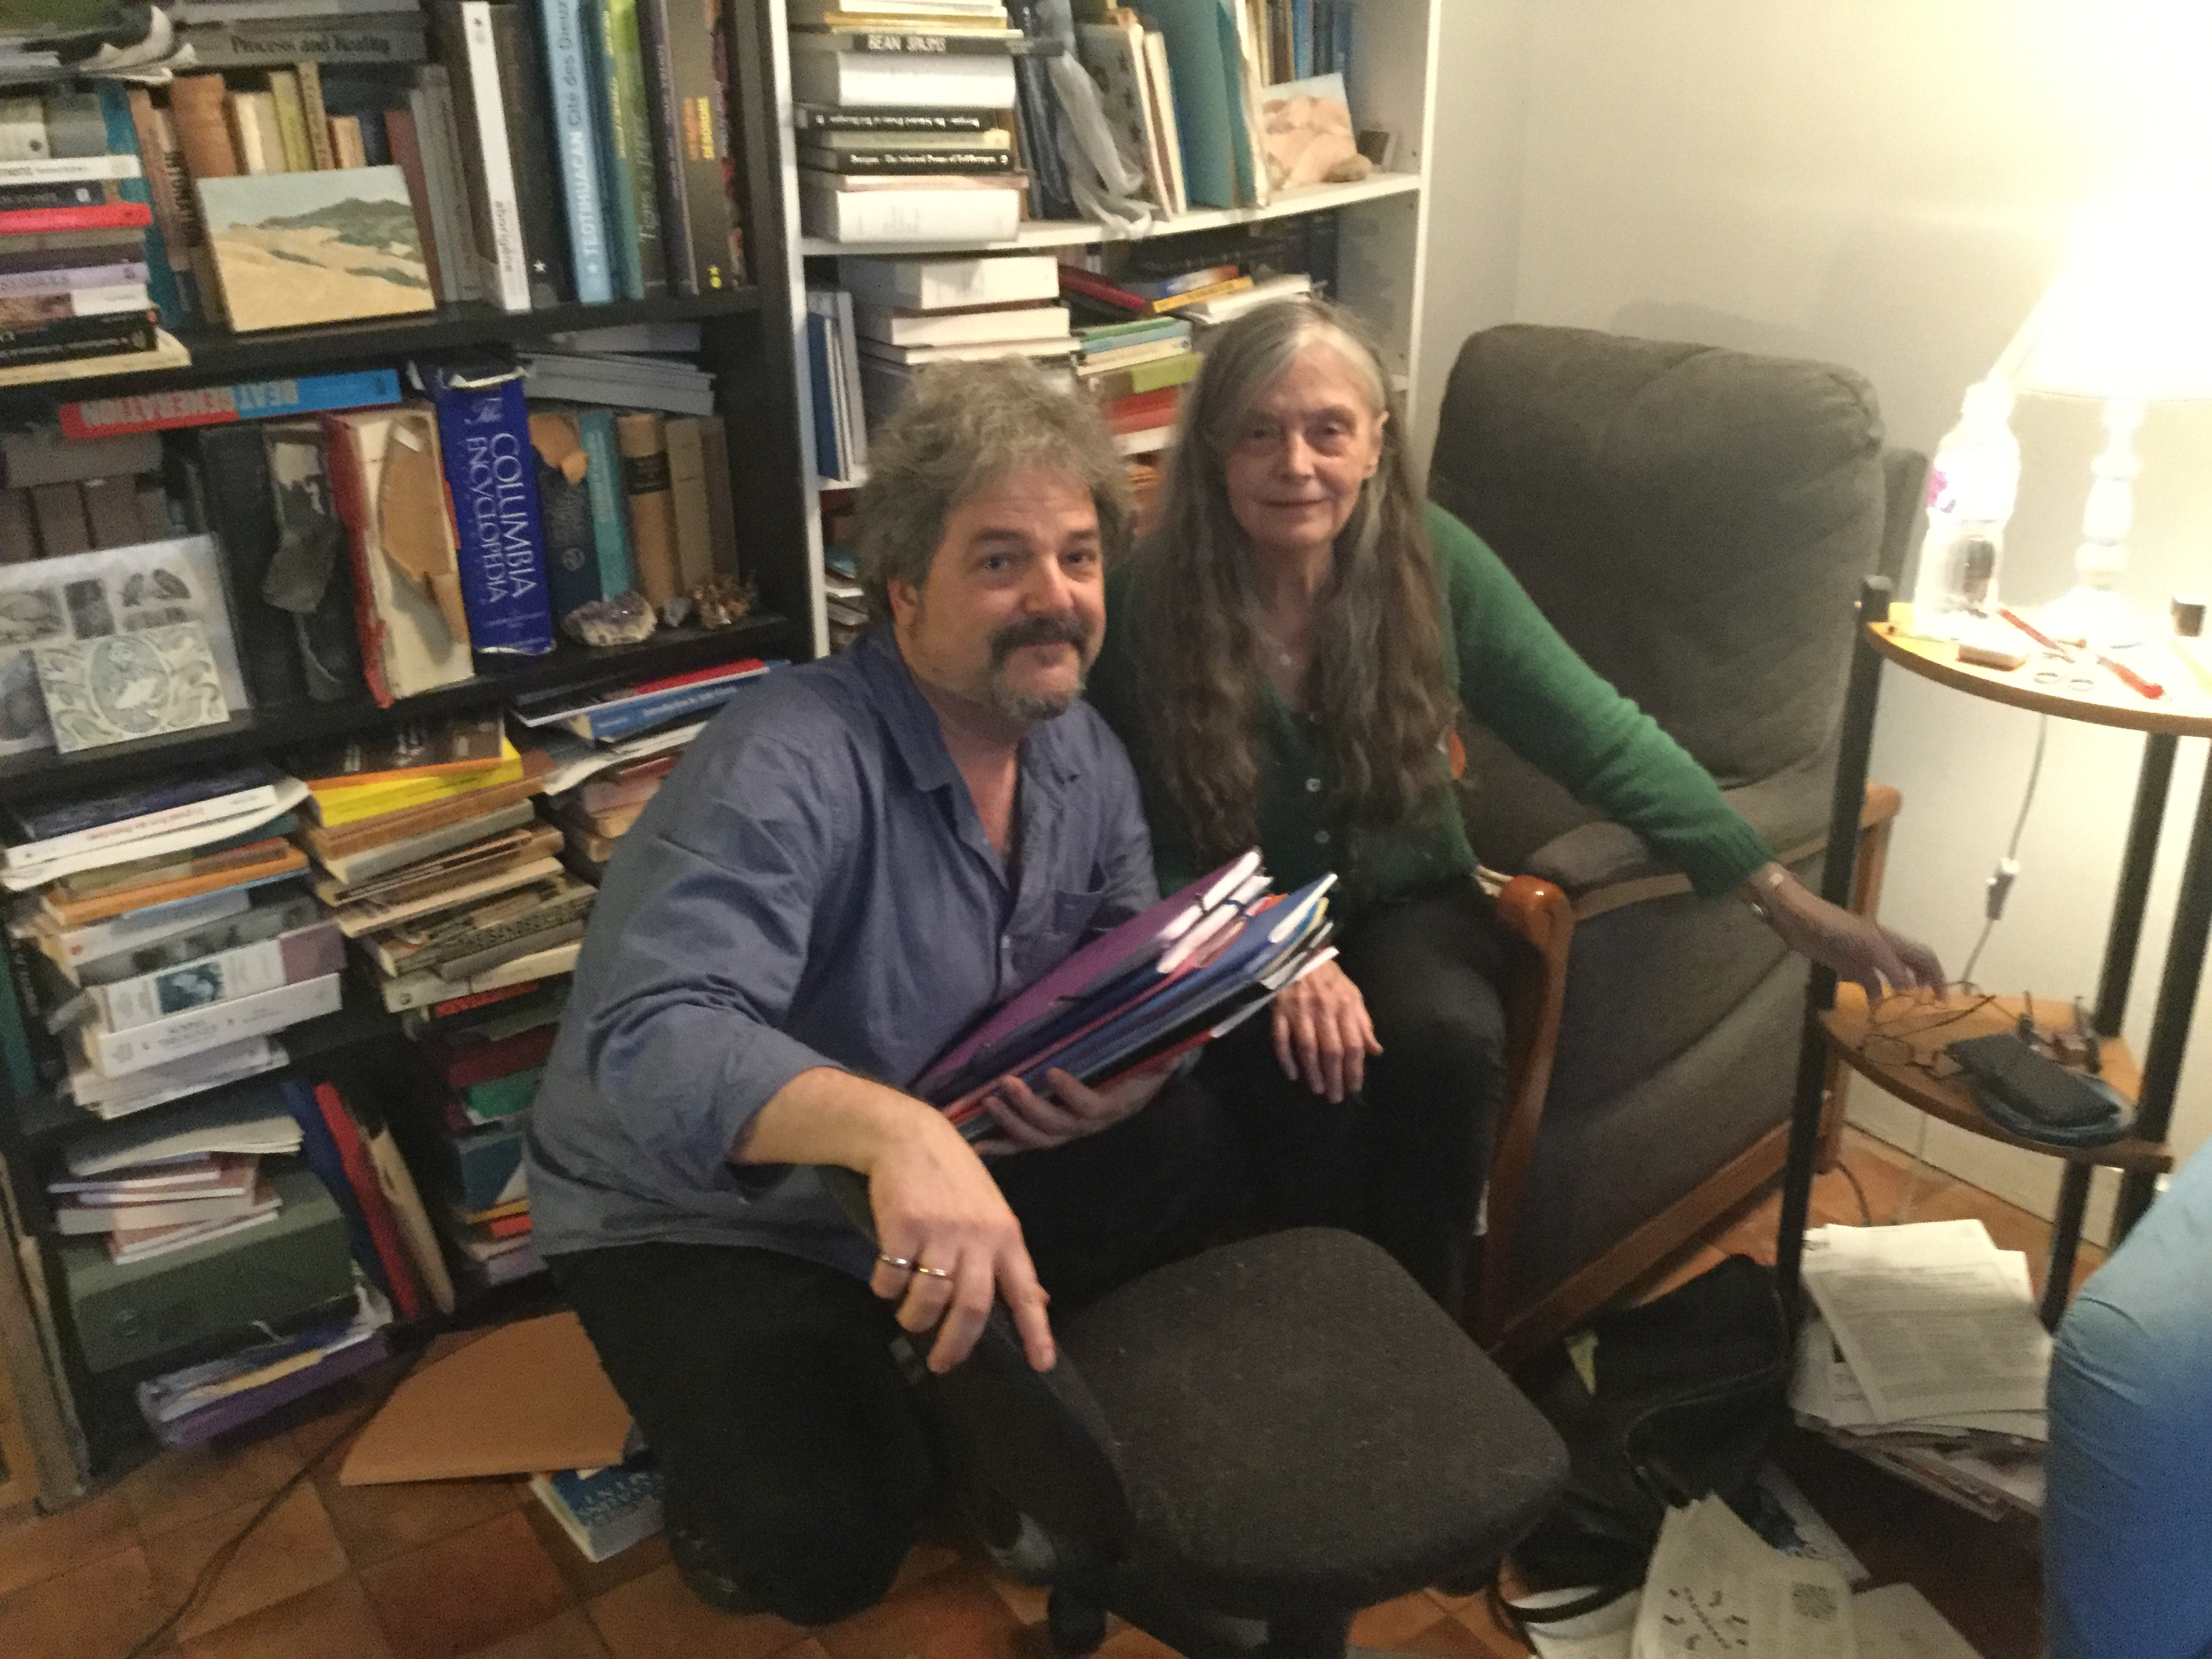 Caption: Poet alicce Notley and composer/poet Jeff Gburek in front of Alice's bookcase in Paris., Credit: Marjorie Van Halteren